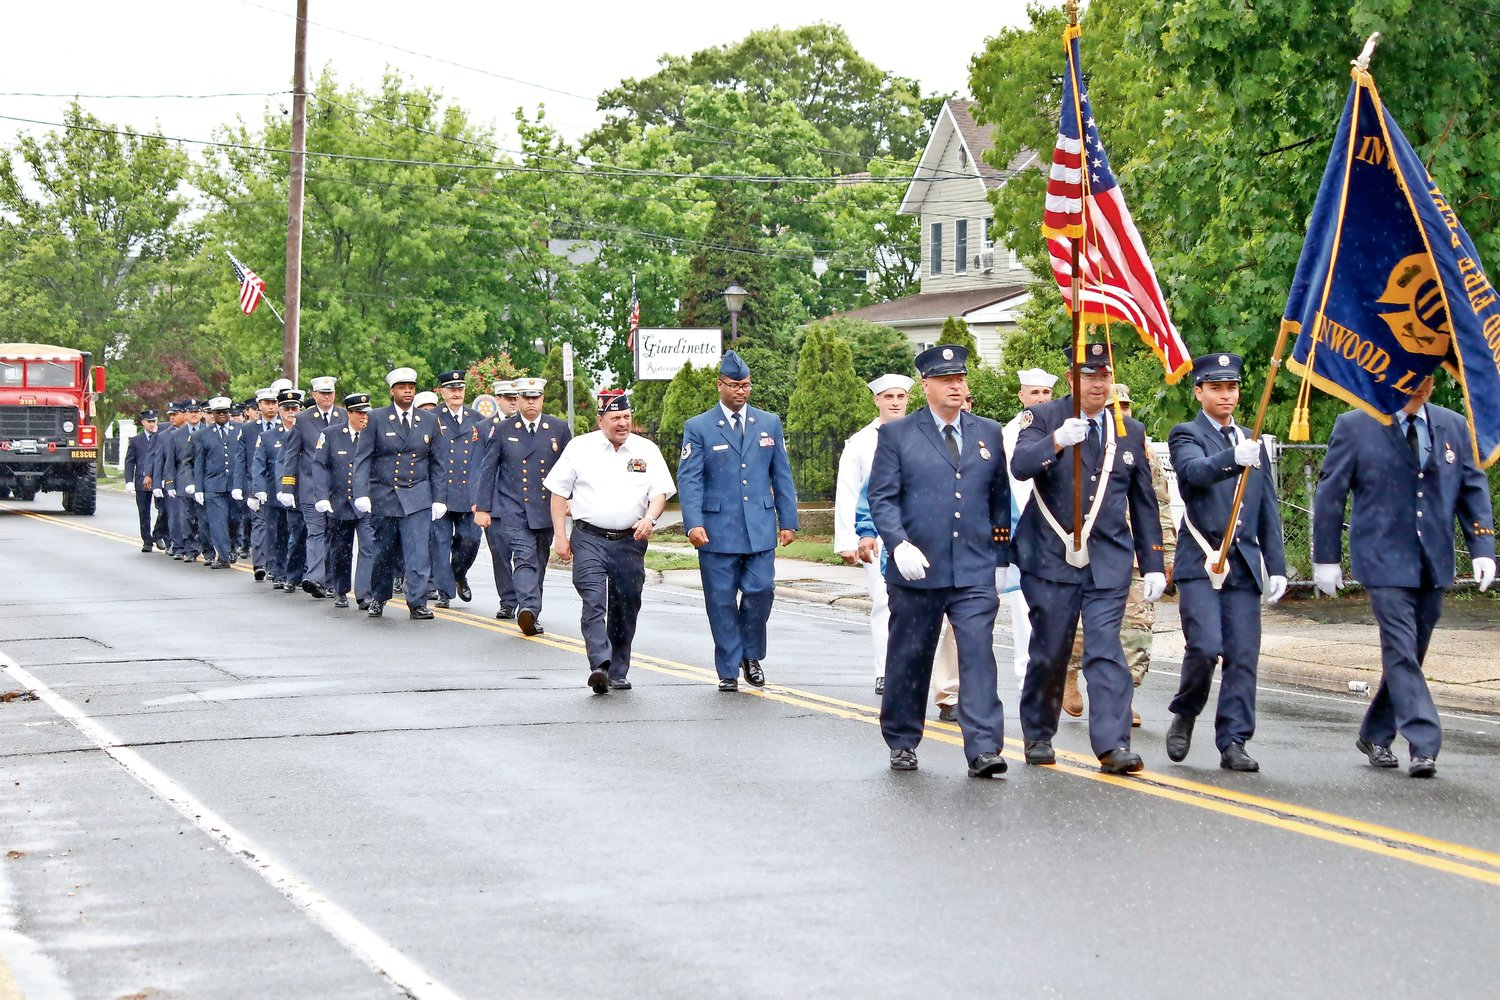 Last year's Inwood Memorial Day Parade was led by the Inwood Fire Department's Color Guard. From left were from left, Royal Pearsall, Richard Perone, John Romero and Kenneth Oehler III.